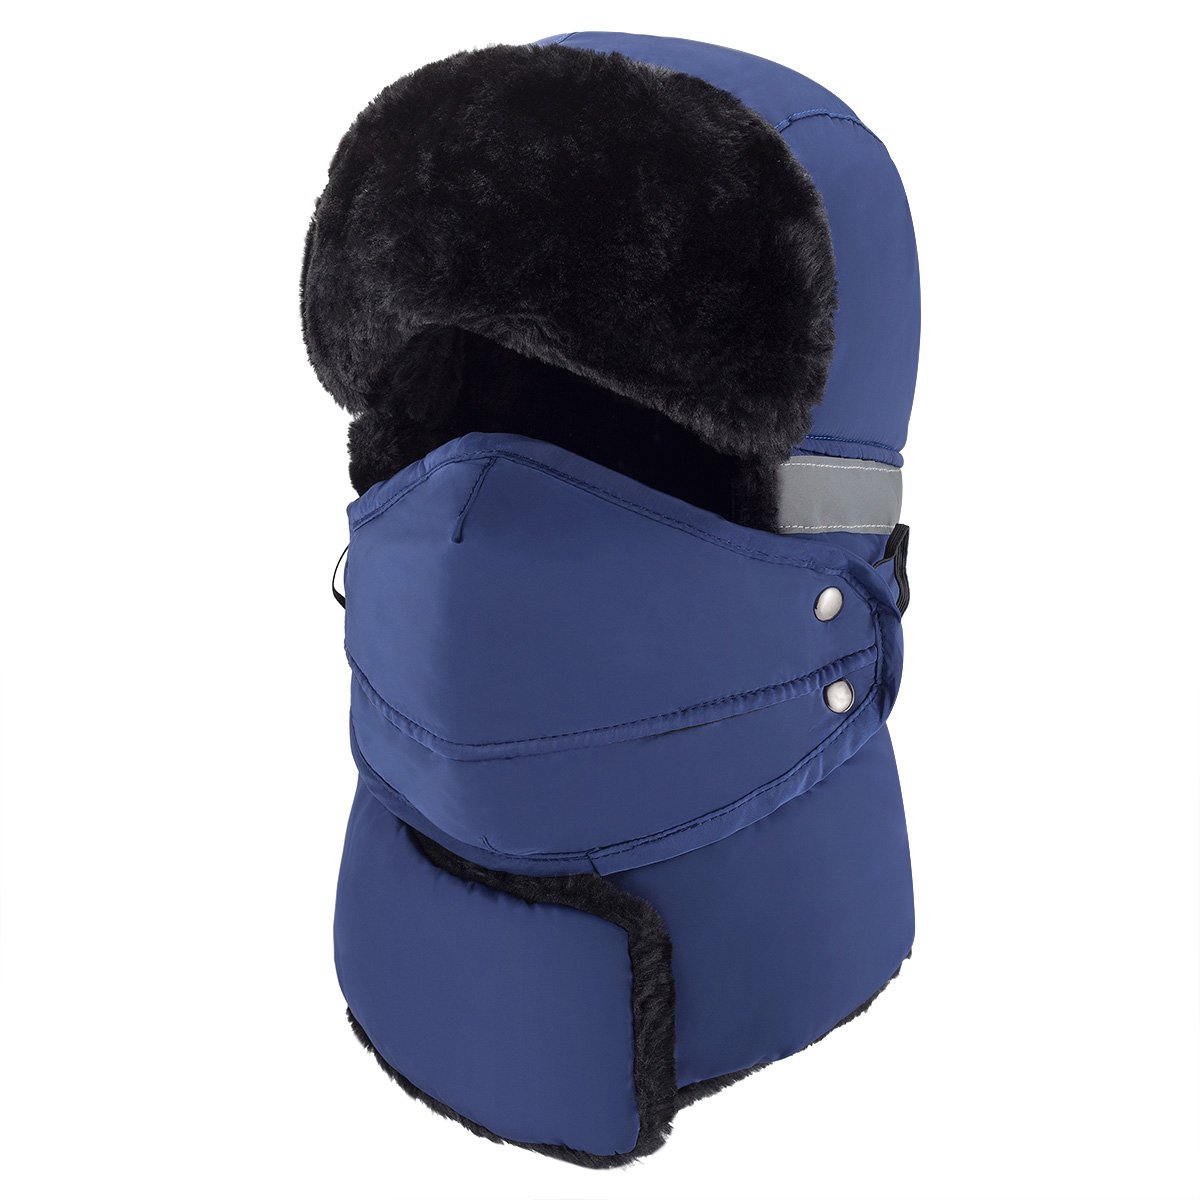 Details about (Blue) Mysuntown Unisex Winter Trapper Trooper Hat with Windproof  Mask 8cf17bb57e6b